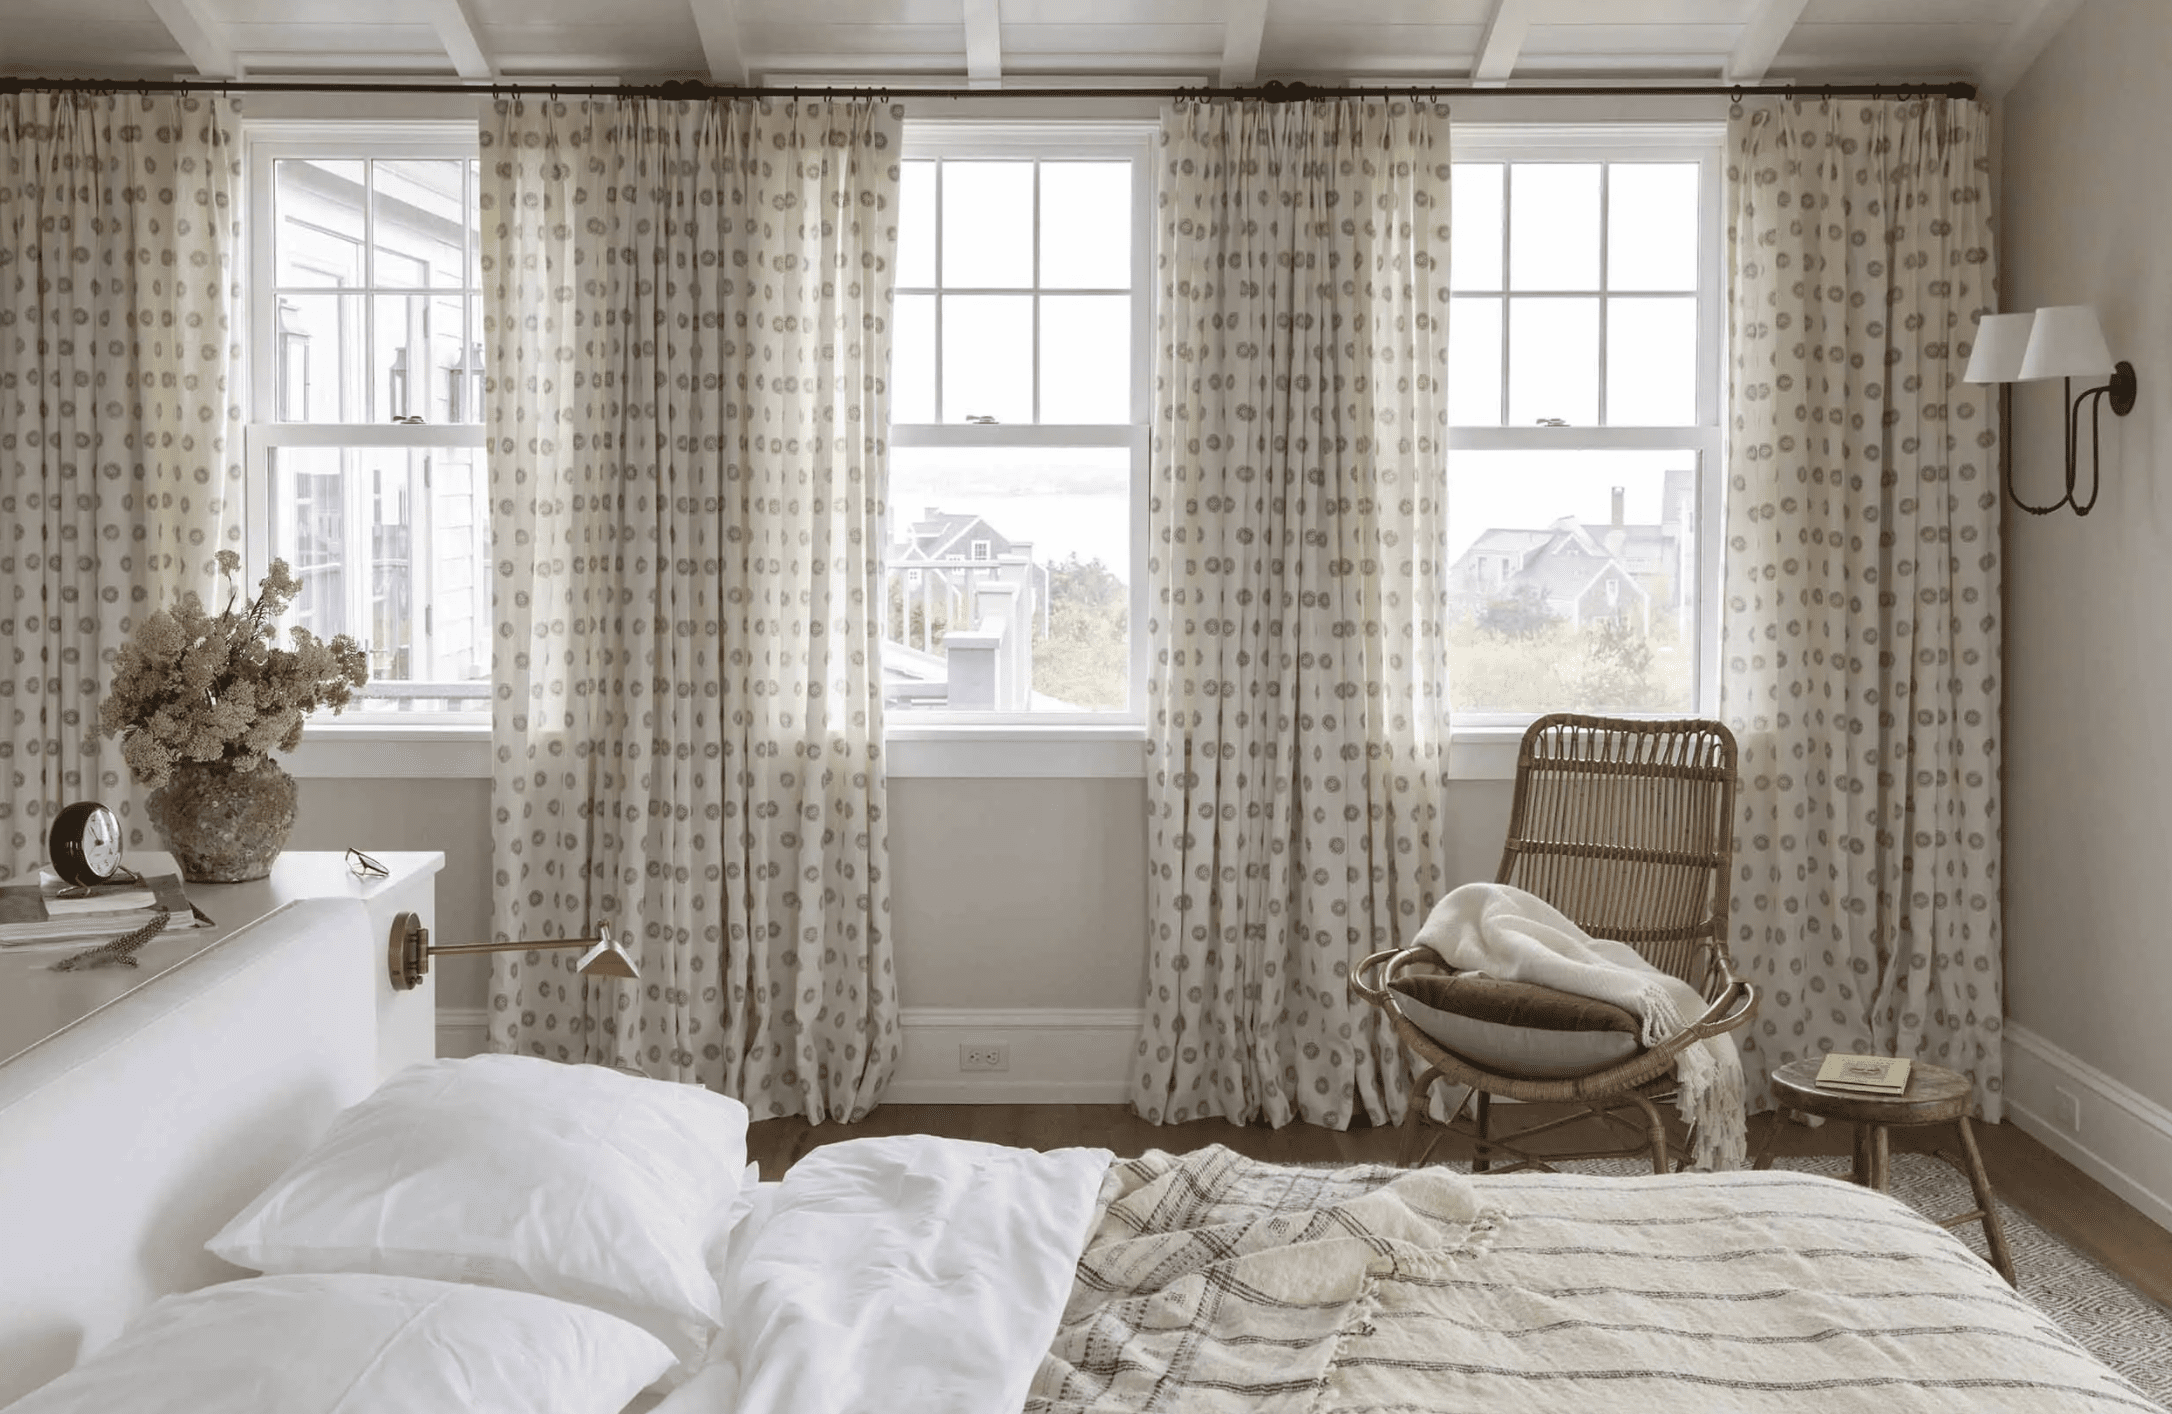 A bedroom with ivory printed curtains and ivory printed blankets